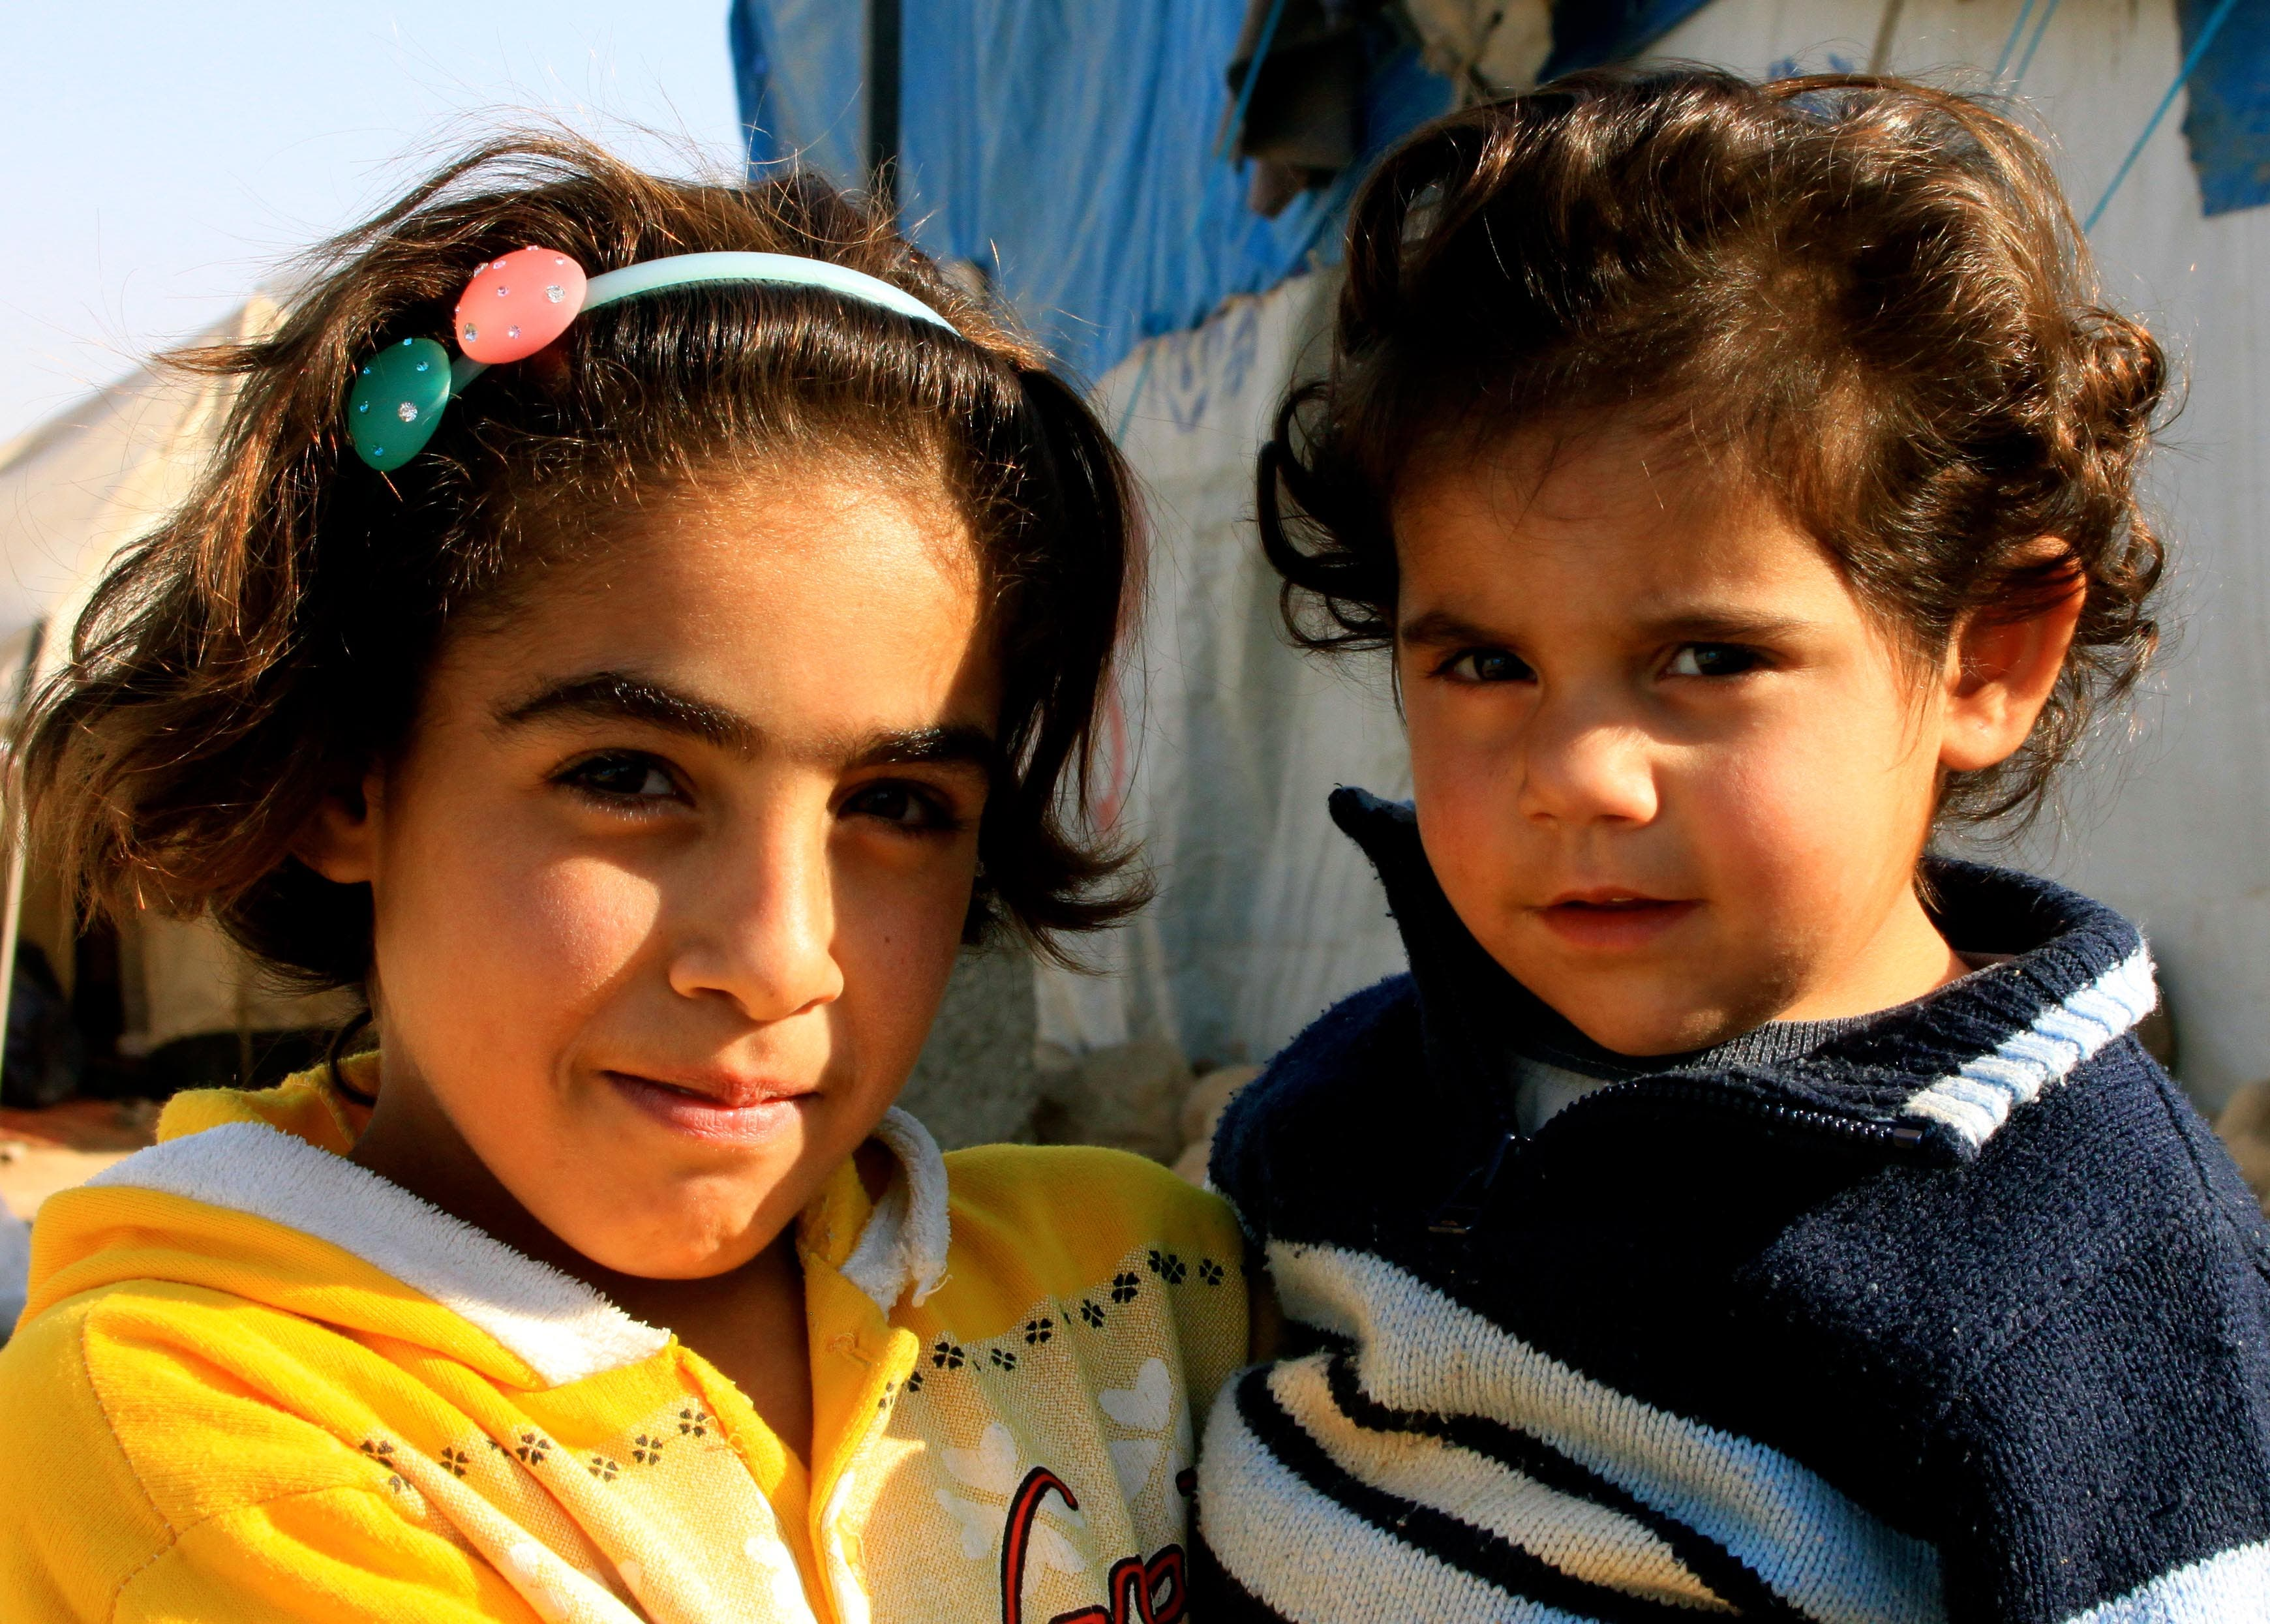 The Kurdish Syrian girl holds her sister. Around 80 per cent of refugees in the camp are from Damascus.